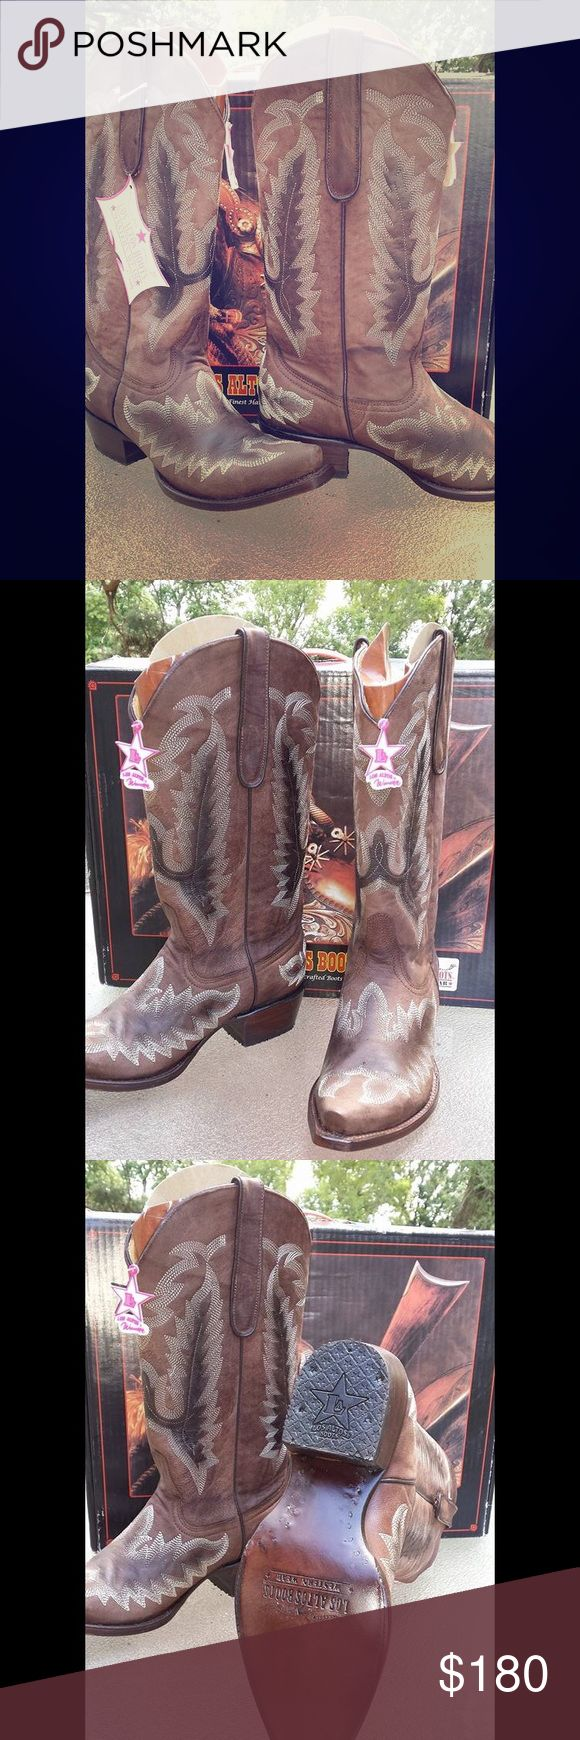 NWT Los Altos Women's Western Cowboy Boots, 9.5/10 NWT Los Altos Women's Western Cowboy leather Boots. Size 10, but run more like a 9.5. Never worn outside -- couldn't fit my on my sz 10 feet. 😥. Come new in box. Los Altos Shoes Heeled Boots